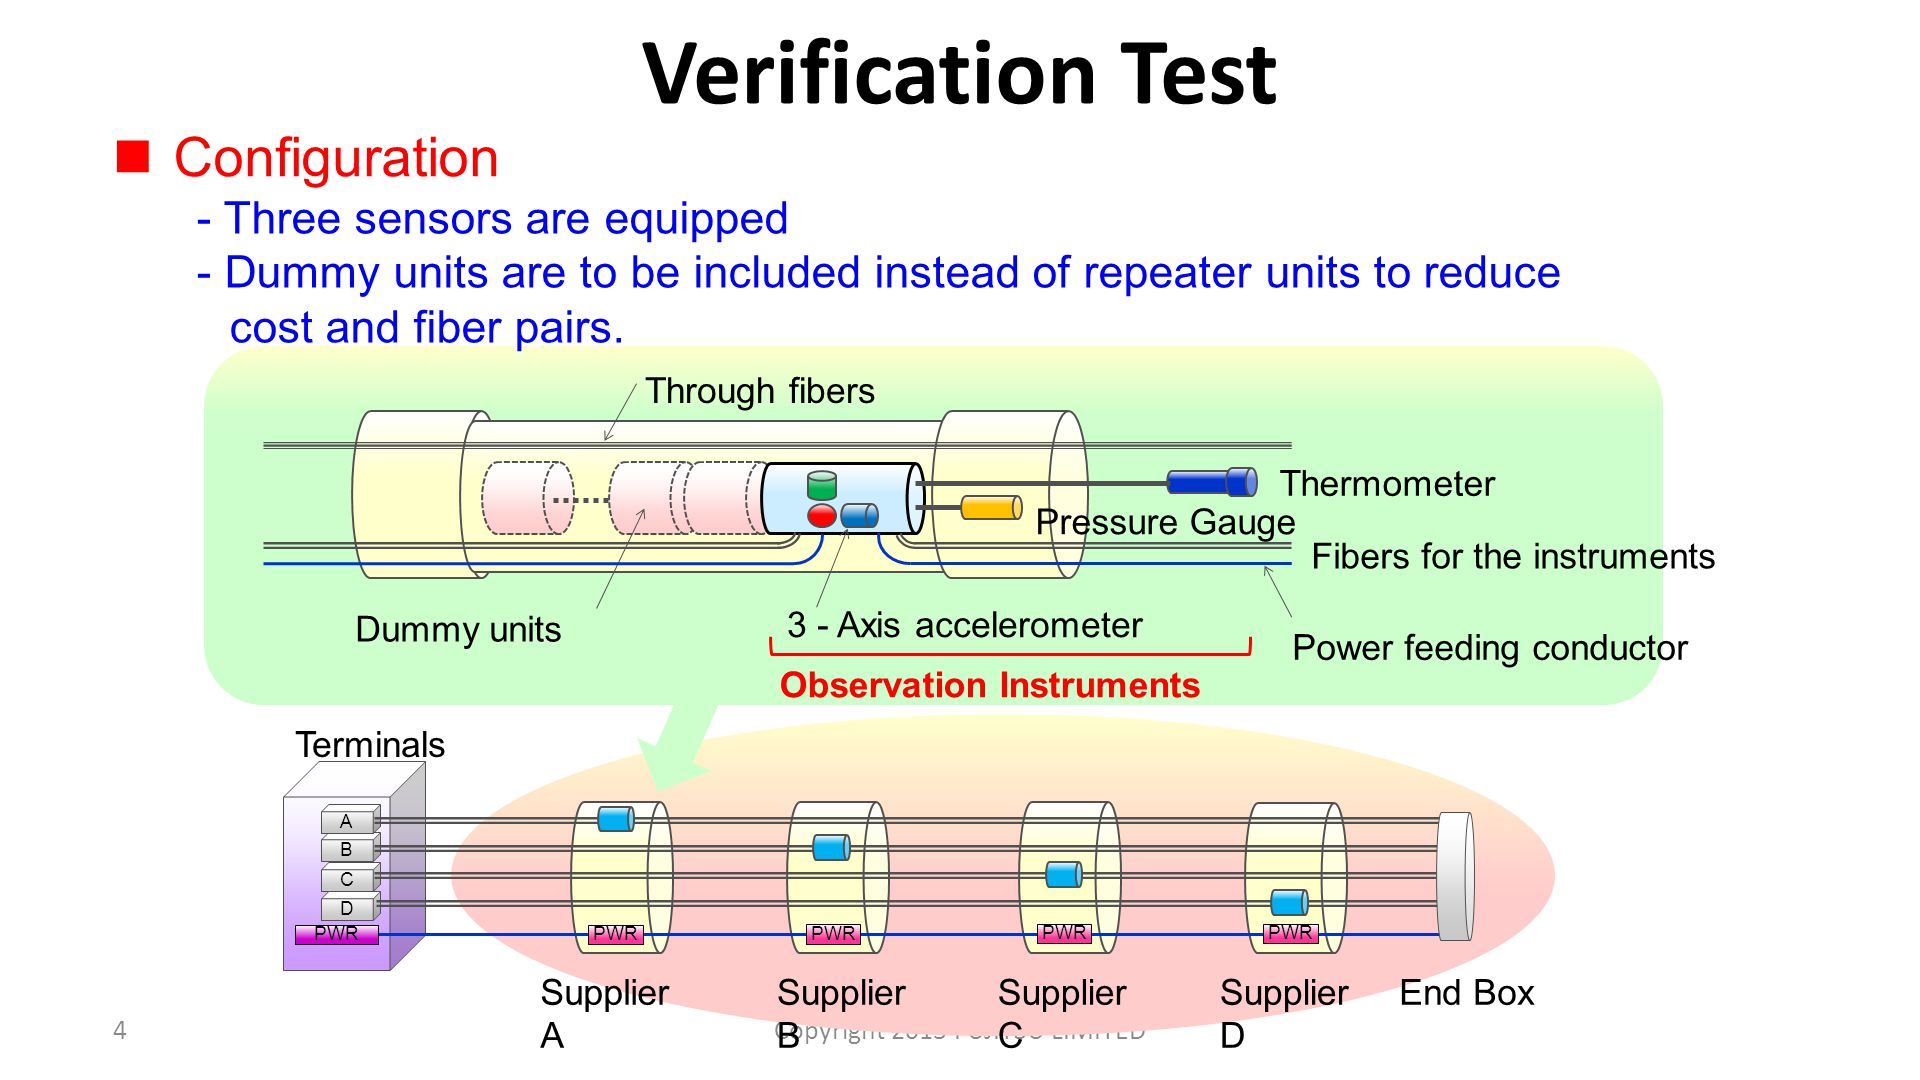 Verification Test 4Copyright 2013 FUJITSU LIMITED Dummy units Observation Instruments Through fibers Thermometer Pressure Gauge 3 - Axis accelerometer Fibers for the instruments Power feeding conductor Configuration - Three sensors are equipped - Dummy units are to be included instead of repeater units to reduce cost and fiber pairs.